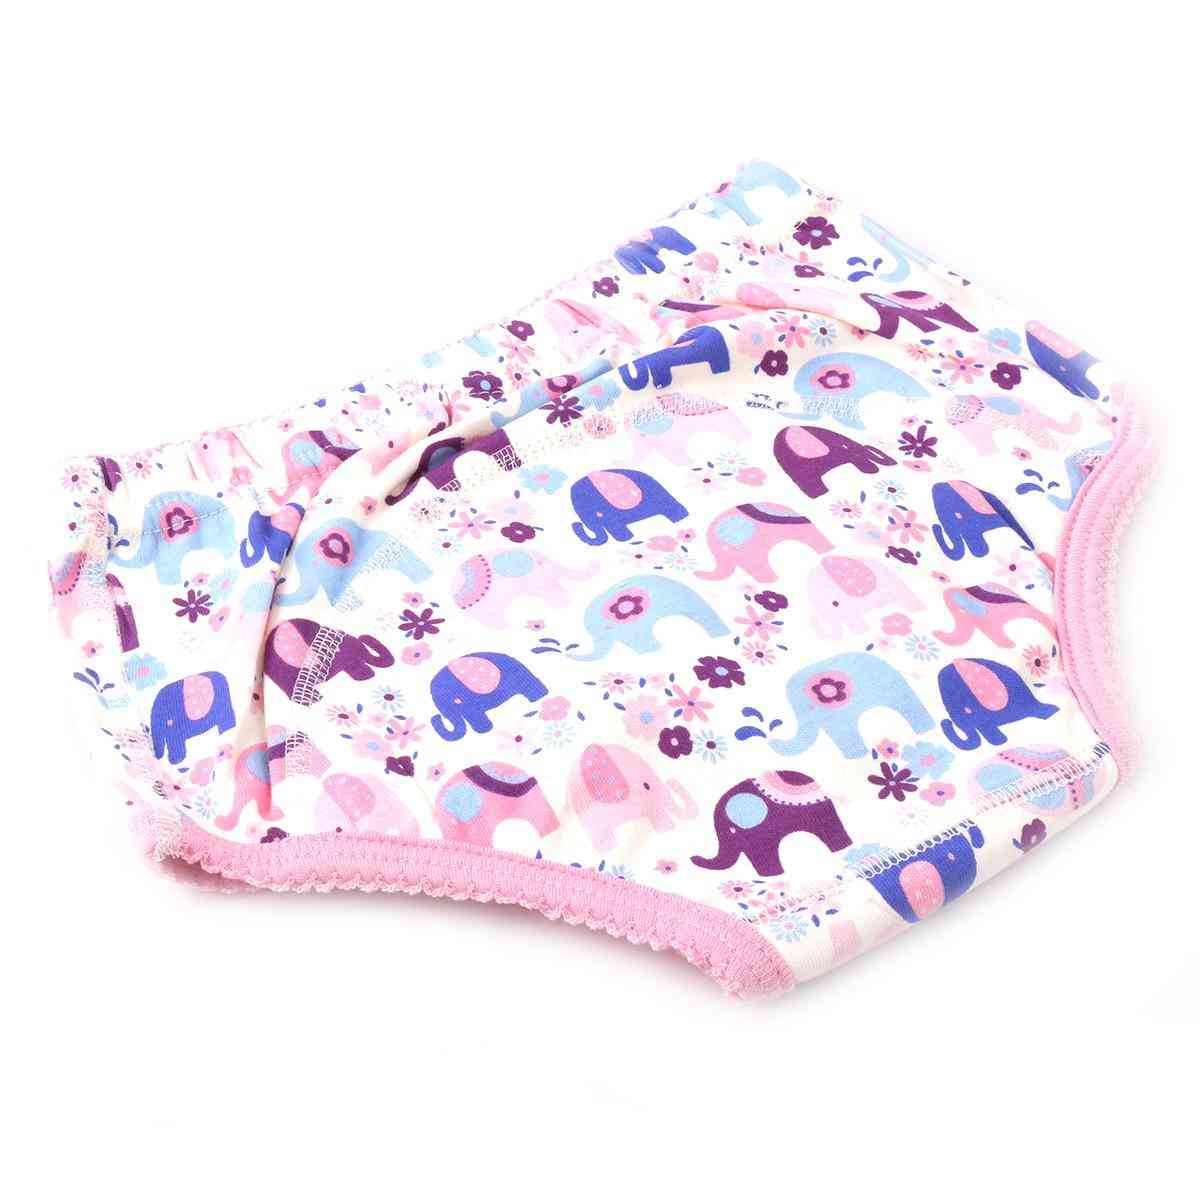 Soft Padded Underwear for 3 - 6 Year Kids  Pink